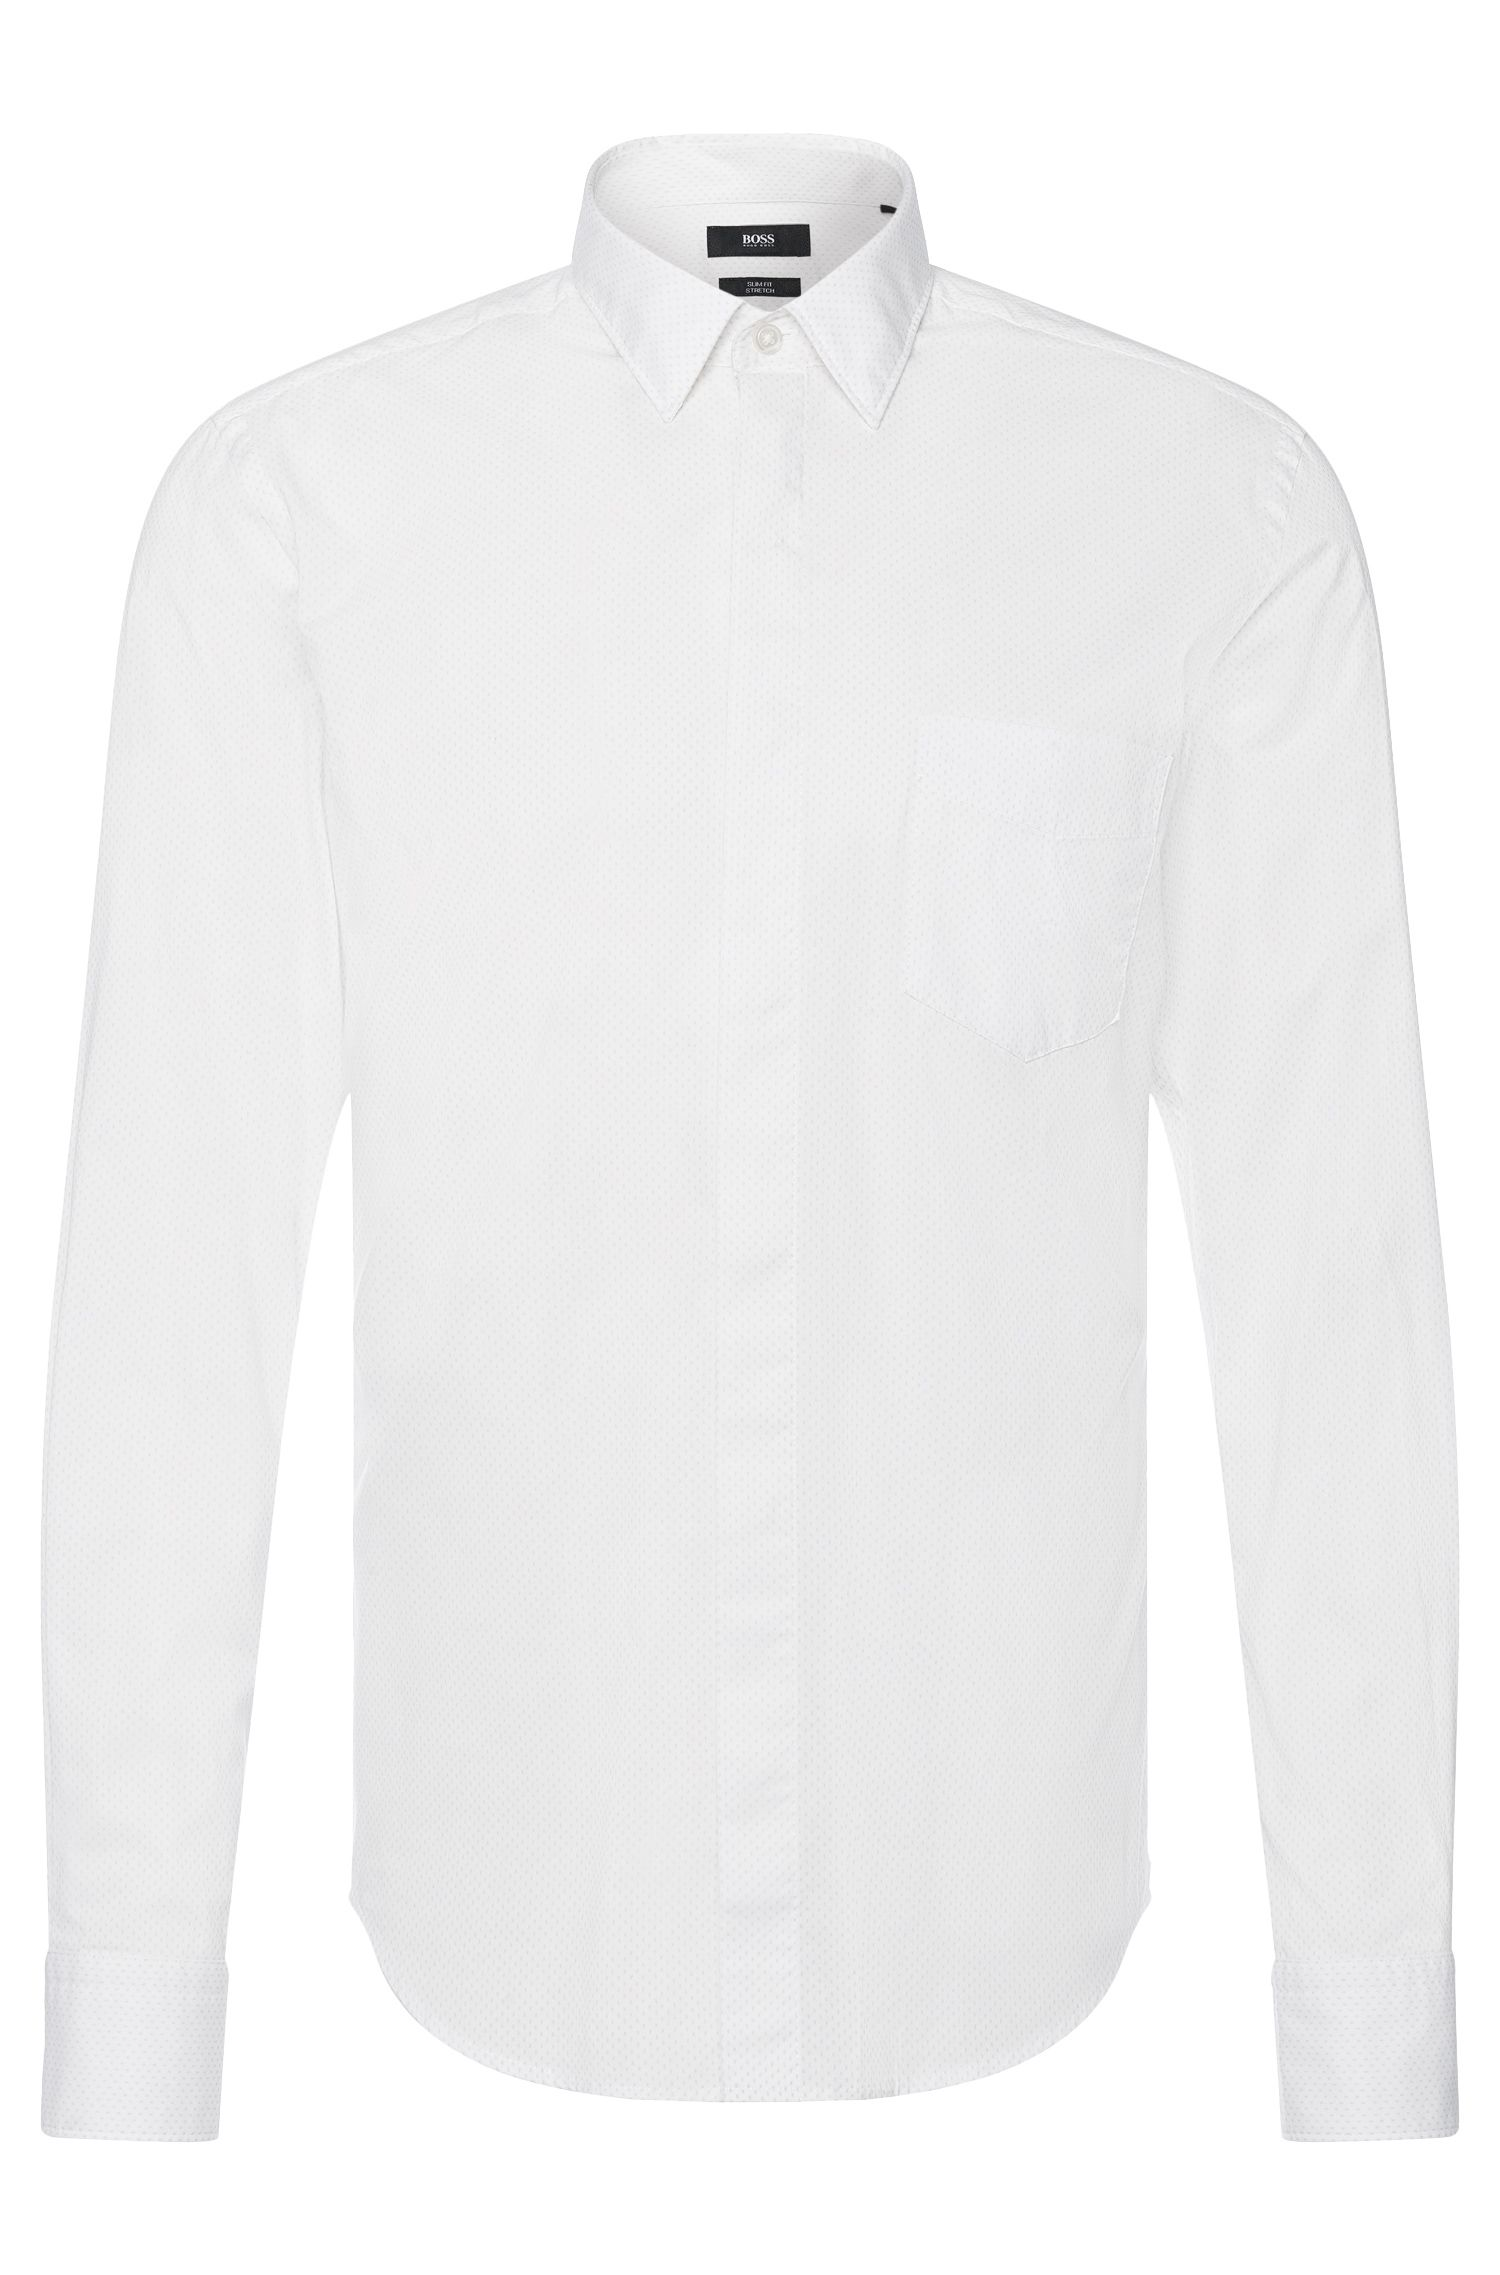 Slim-fit shirt in stretchy cotton: 'Reid_47HP' from the Mercedes-Benz Collection